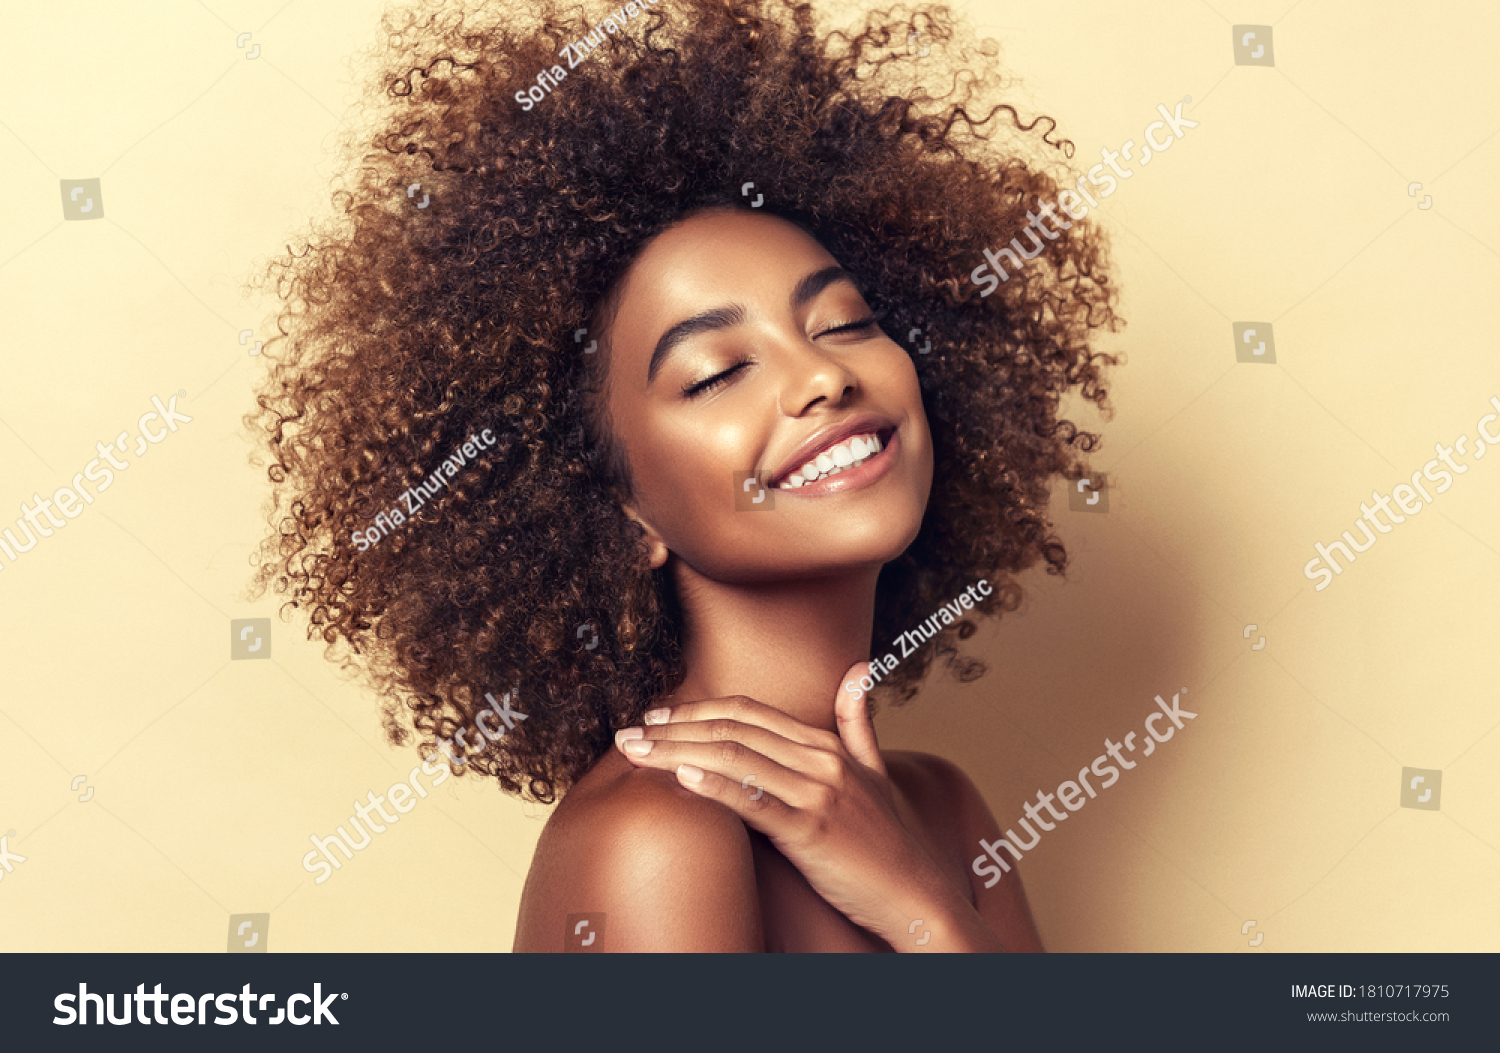 Beauty portrait of african american woman with clean healthy skin on beige background. Smiling dreamy beautiful afro girl.Curly black hair #1810717975